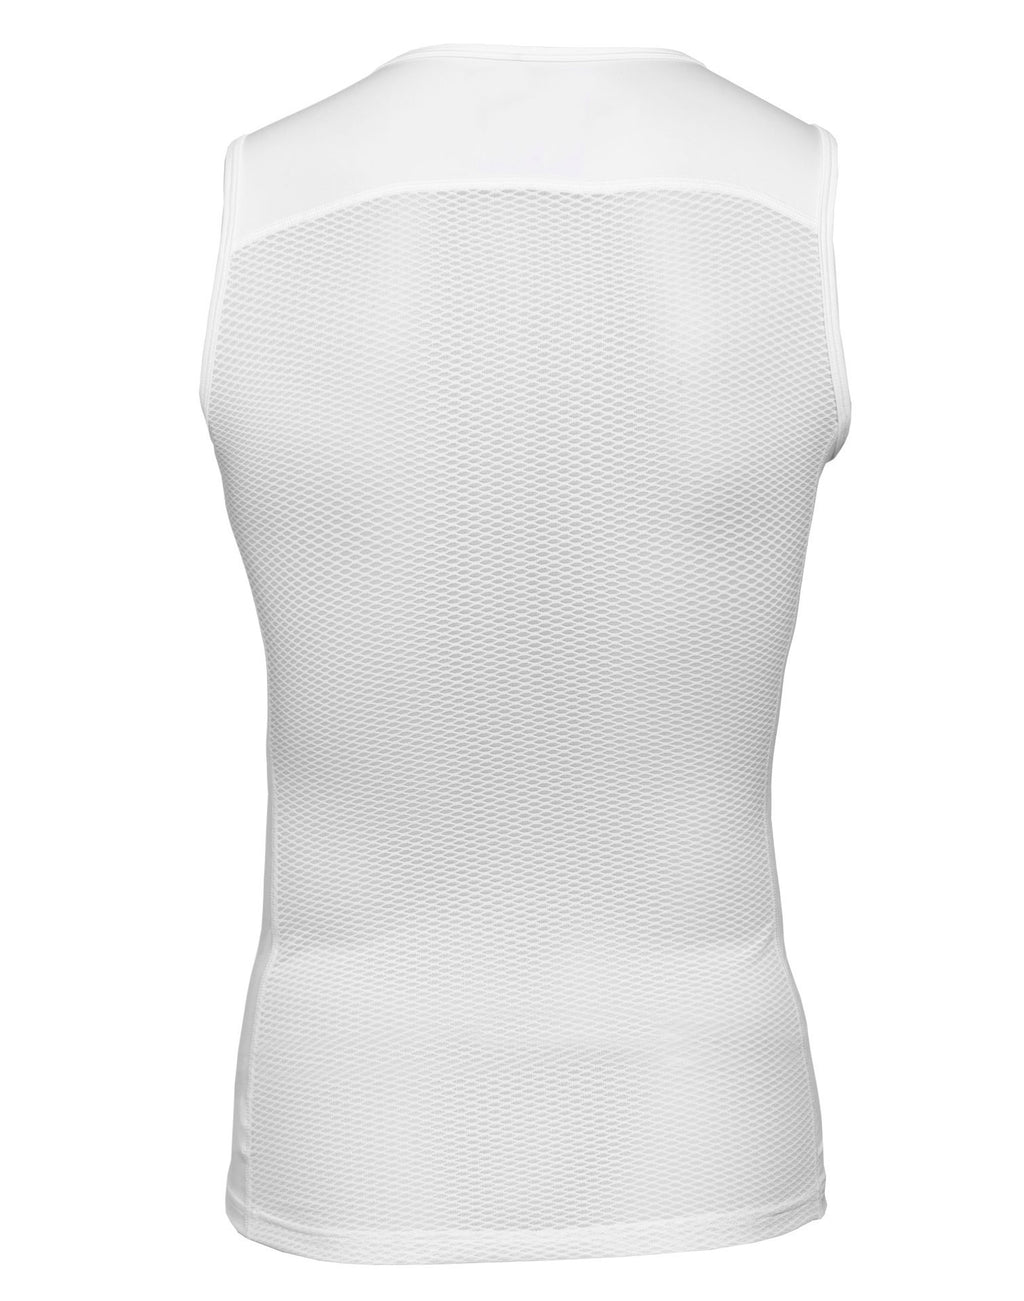 Randwick Unisex Sleeveless Base Layer